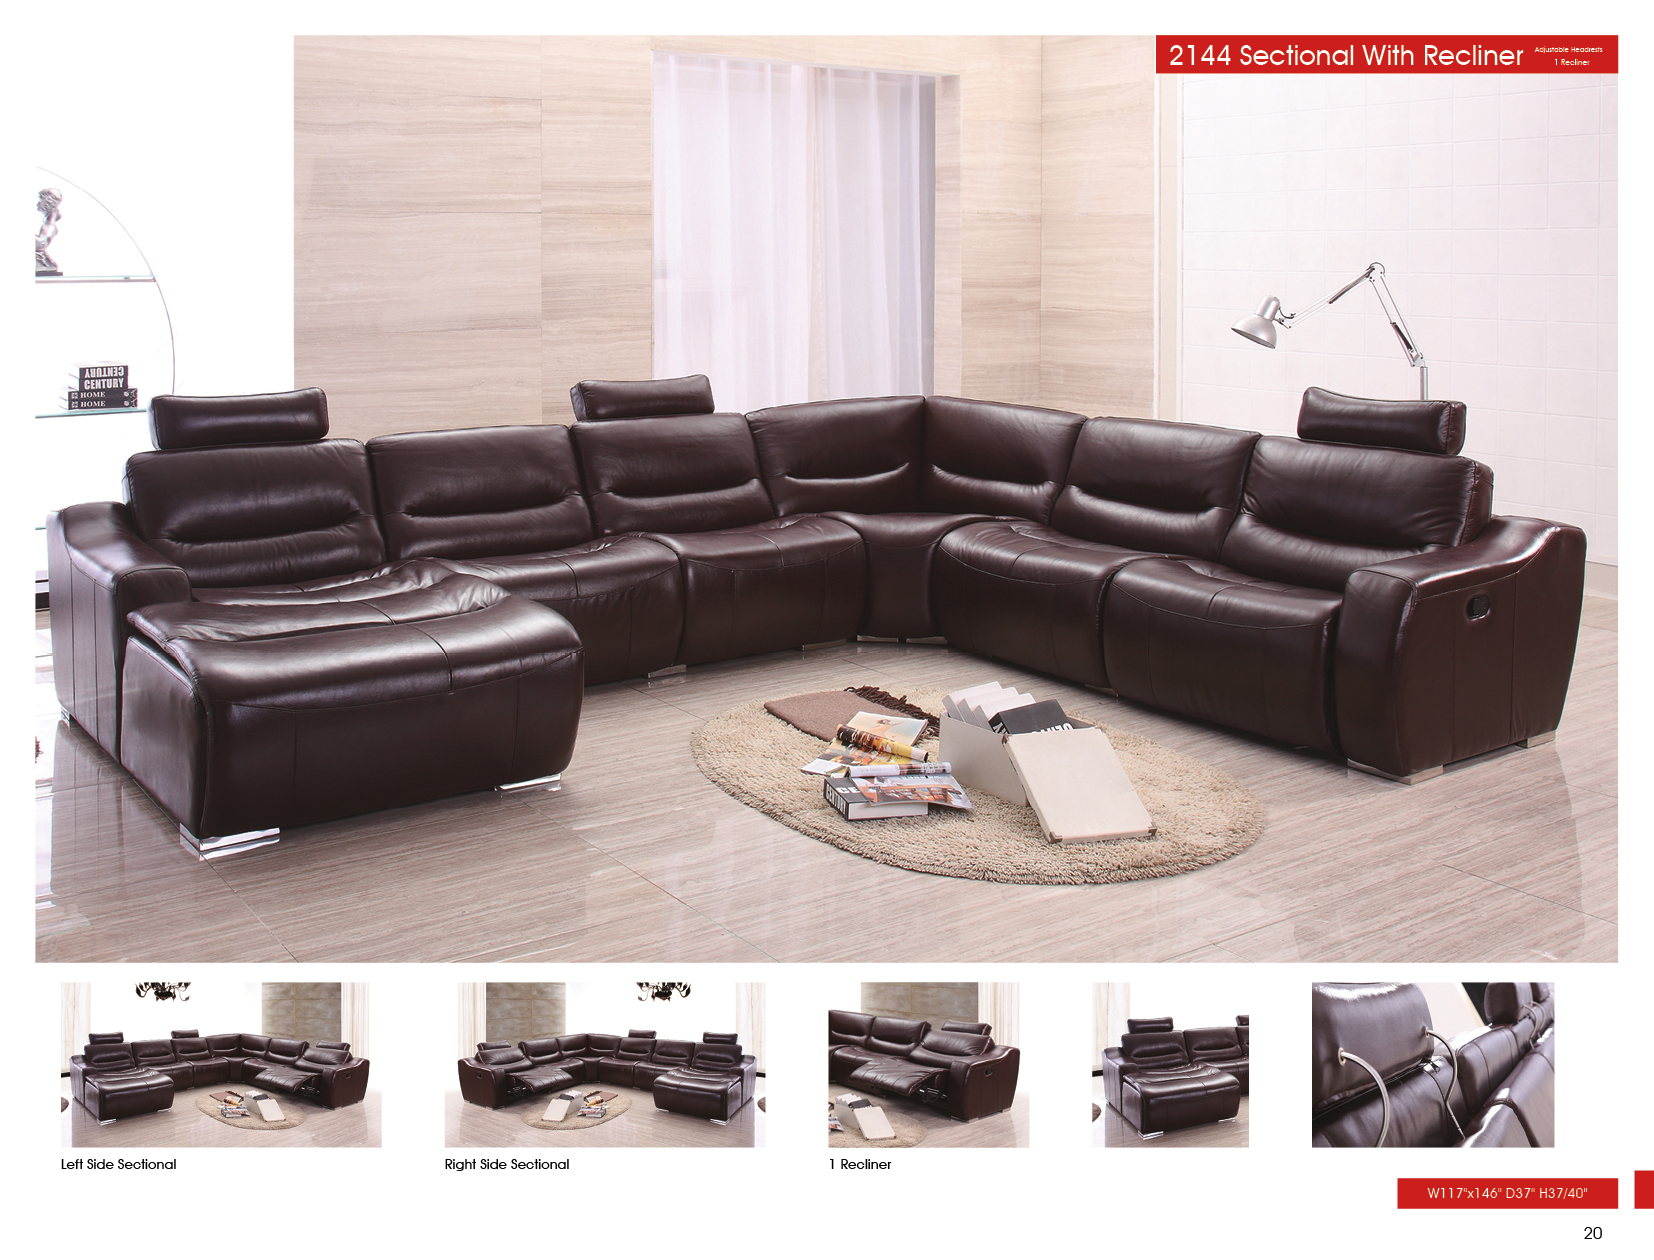 2144 Sectional Left w/Recliner, Recliners, Living Room Furniture